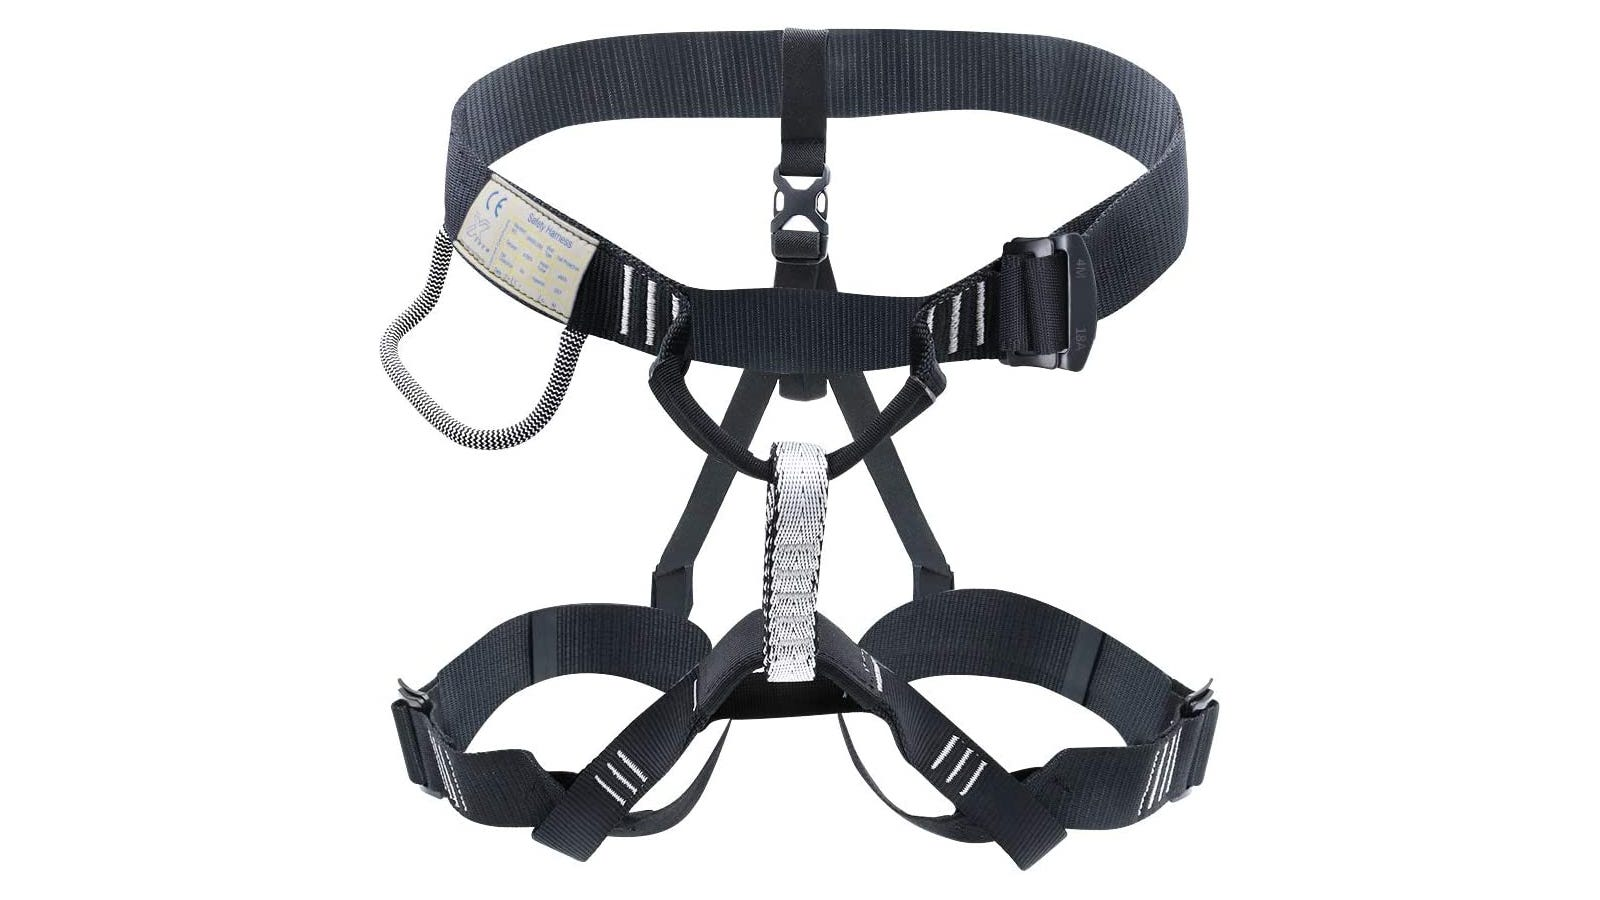 A black and white thin climbing harness